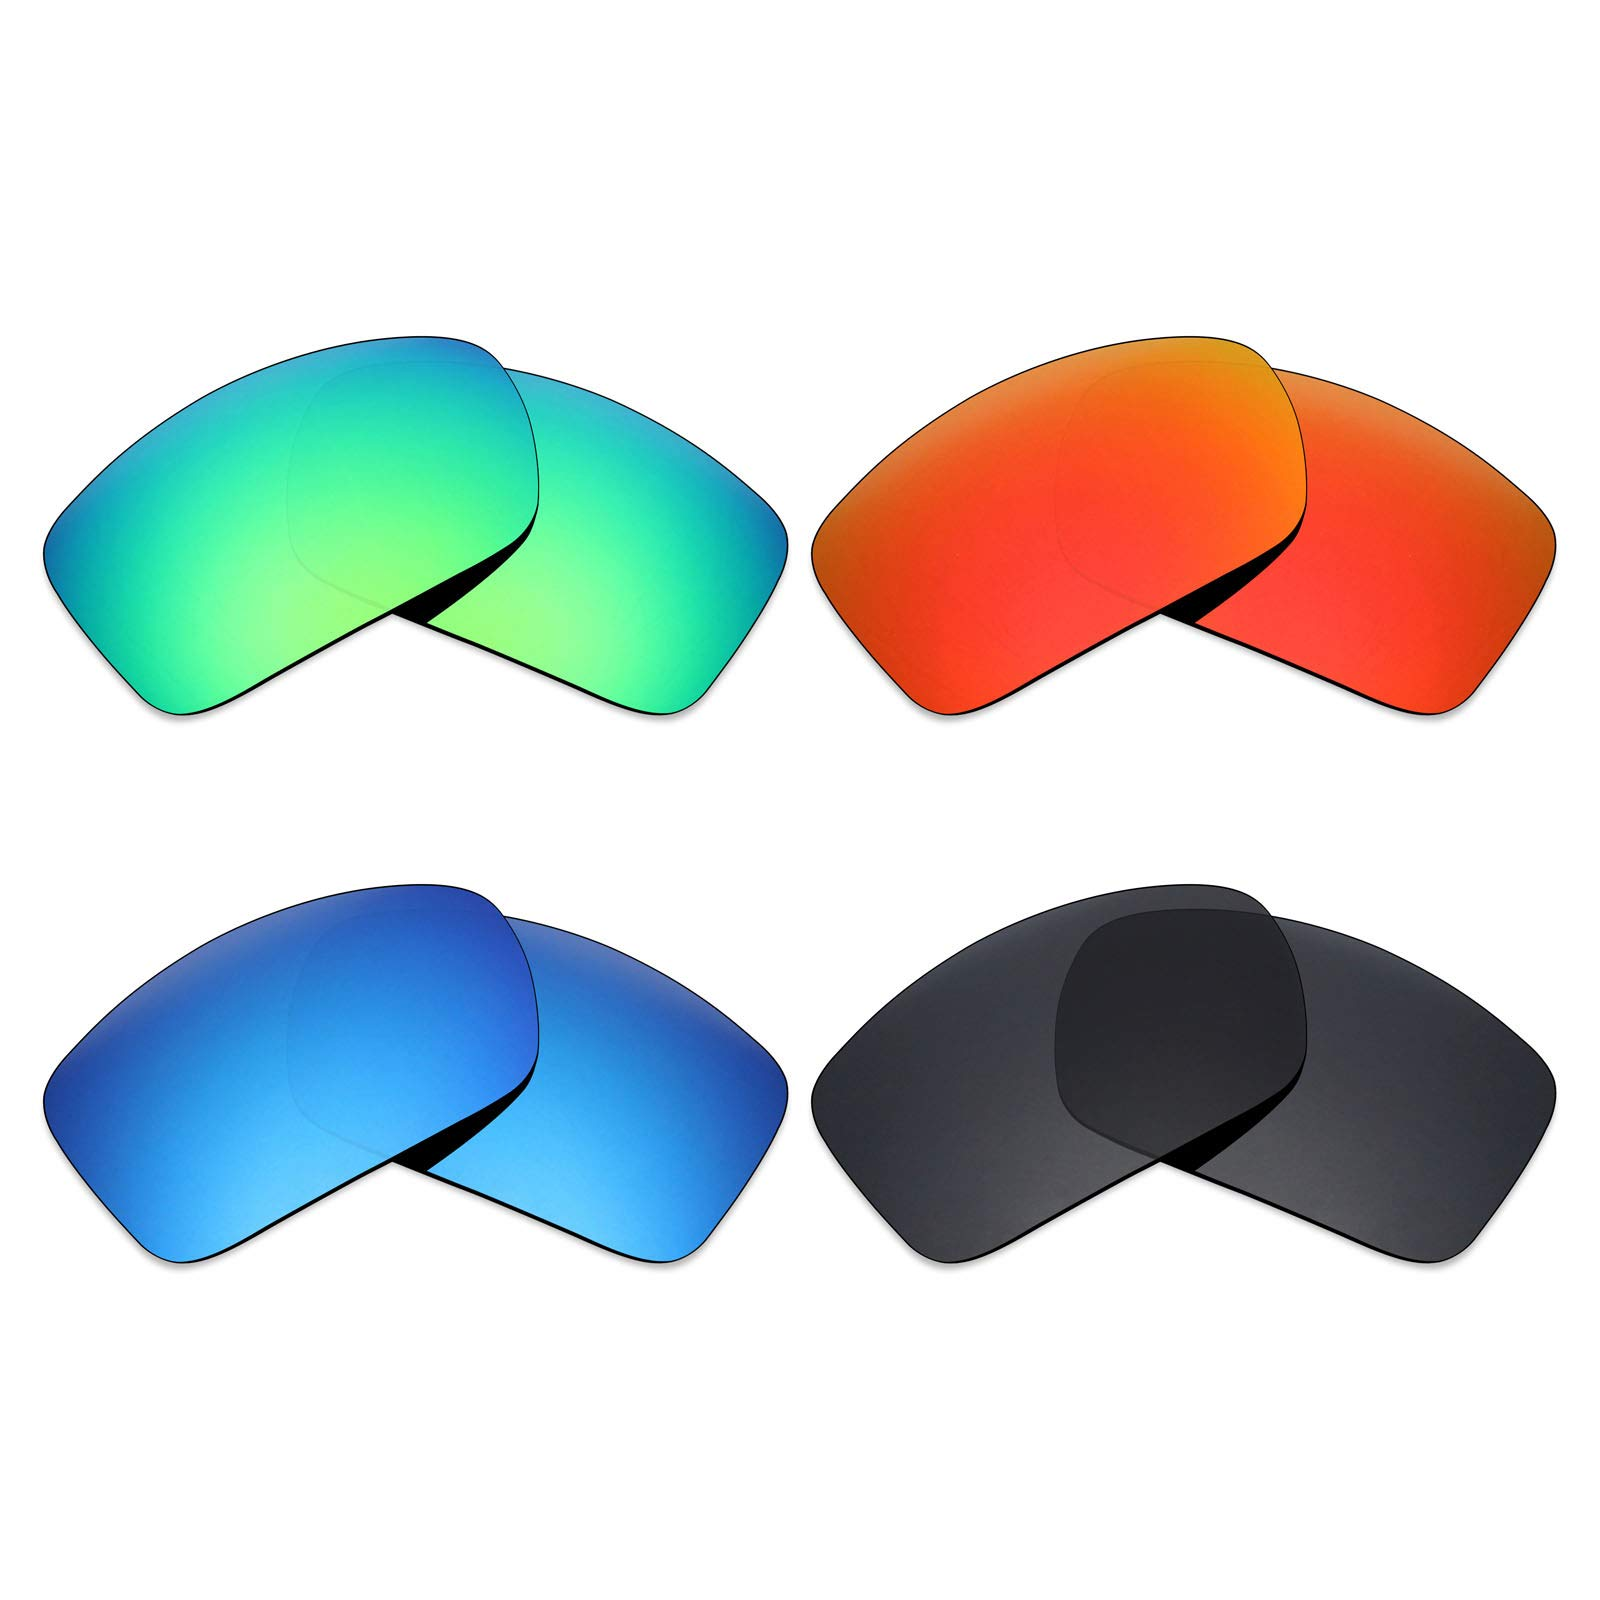 Mryok 4 Pair Polarized Replacement Lenses for Costa Del Mar Blackfin Sunglass - Stealth Black/Fire Red/Ice Blue/Emerald Green